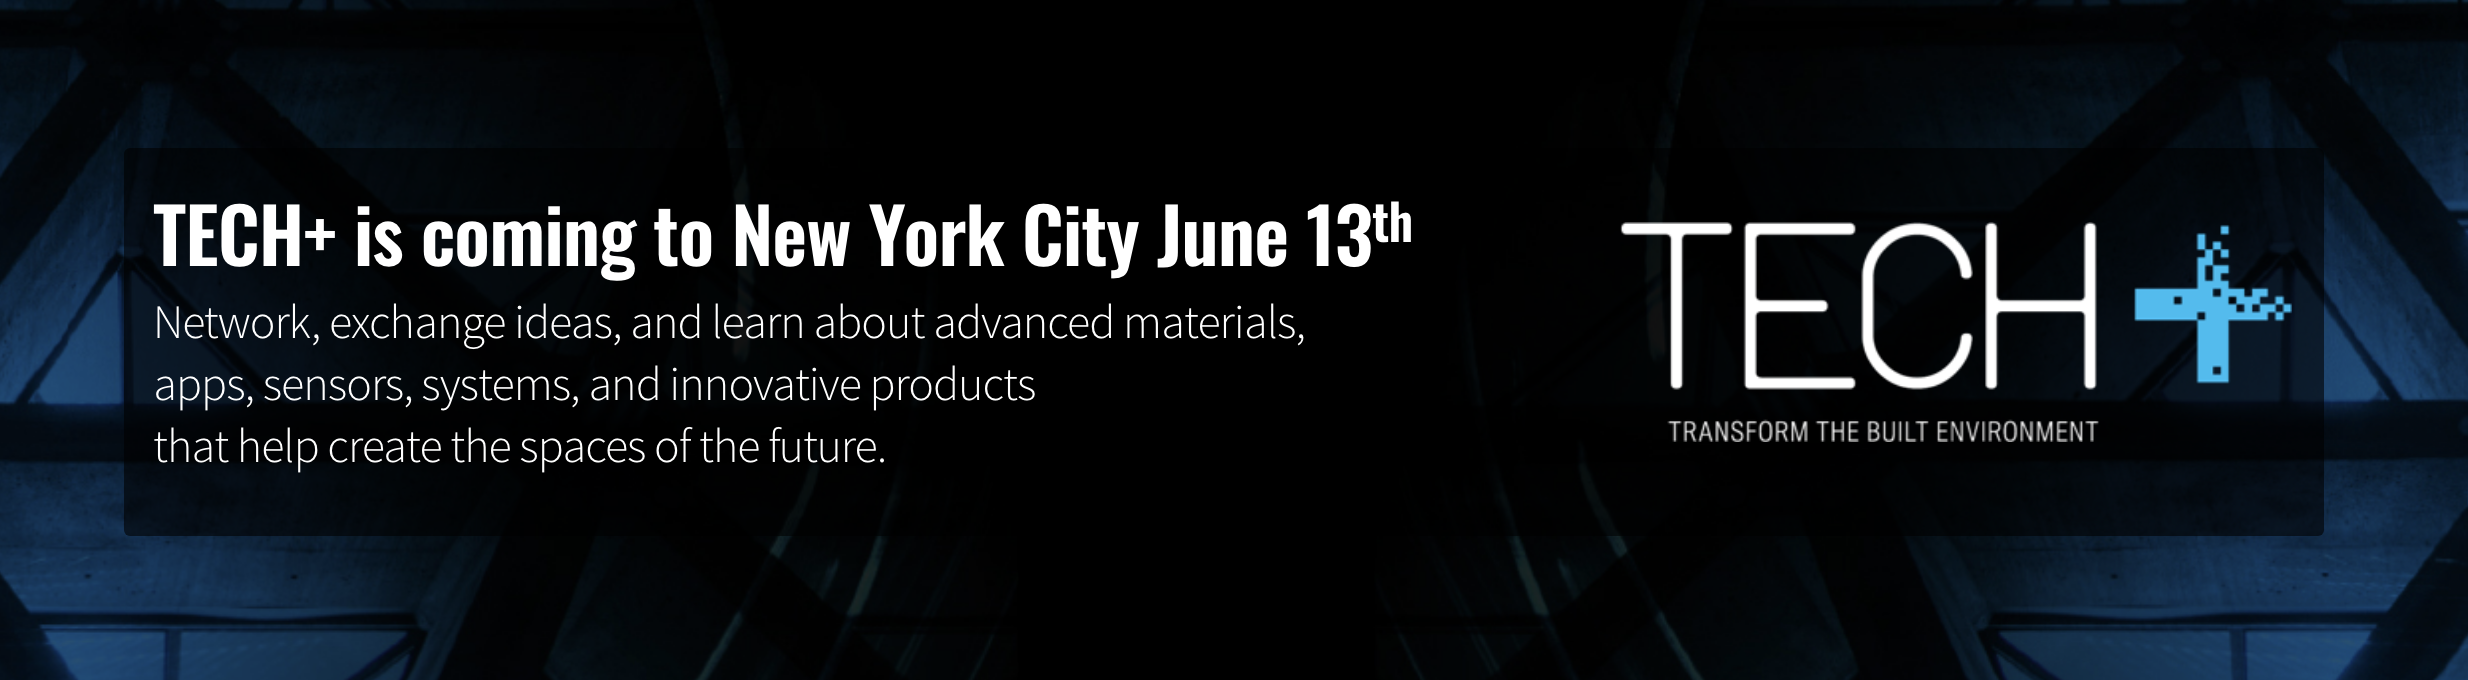 Tech+ Conference: New York City 2019